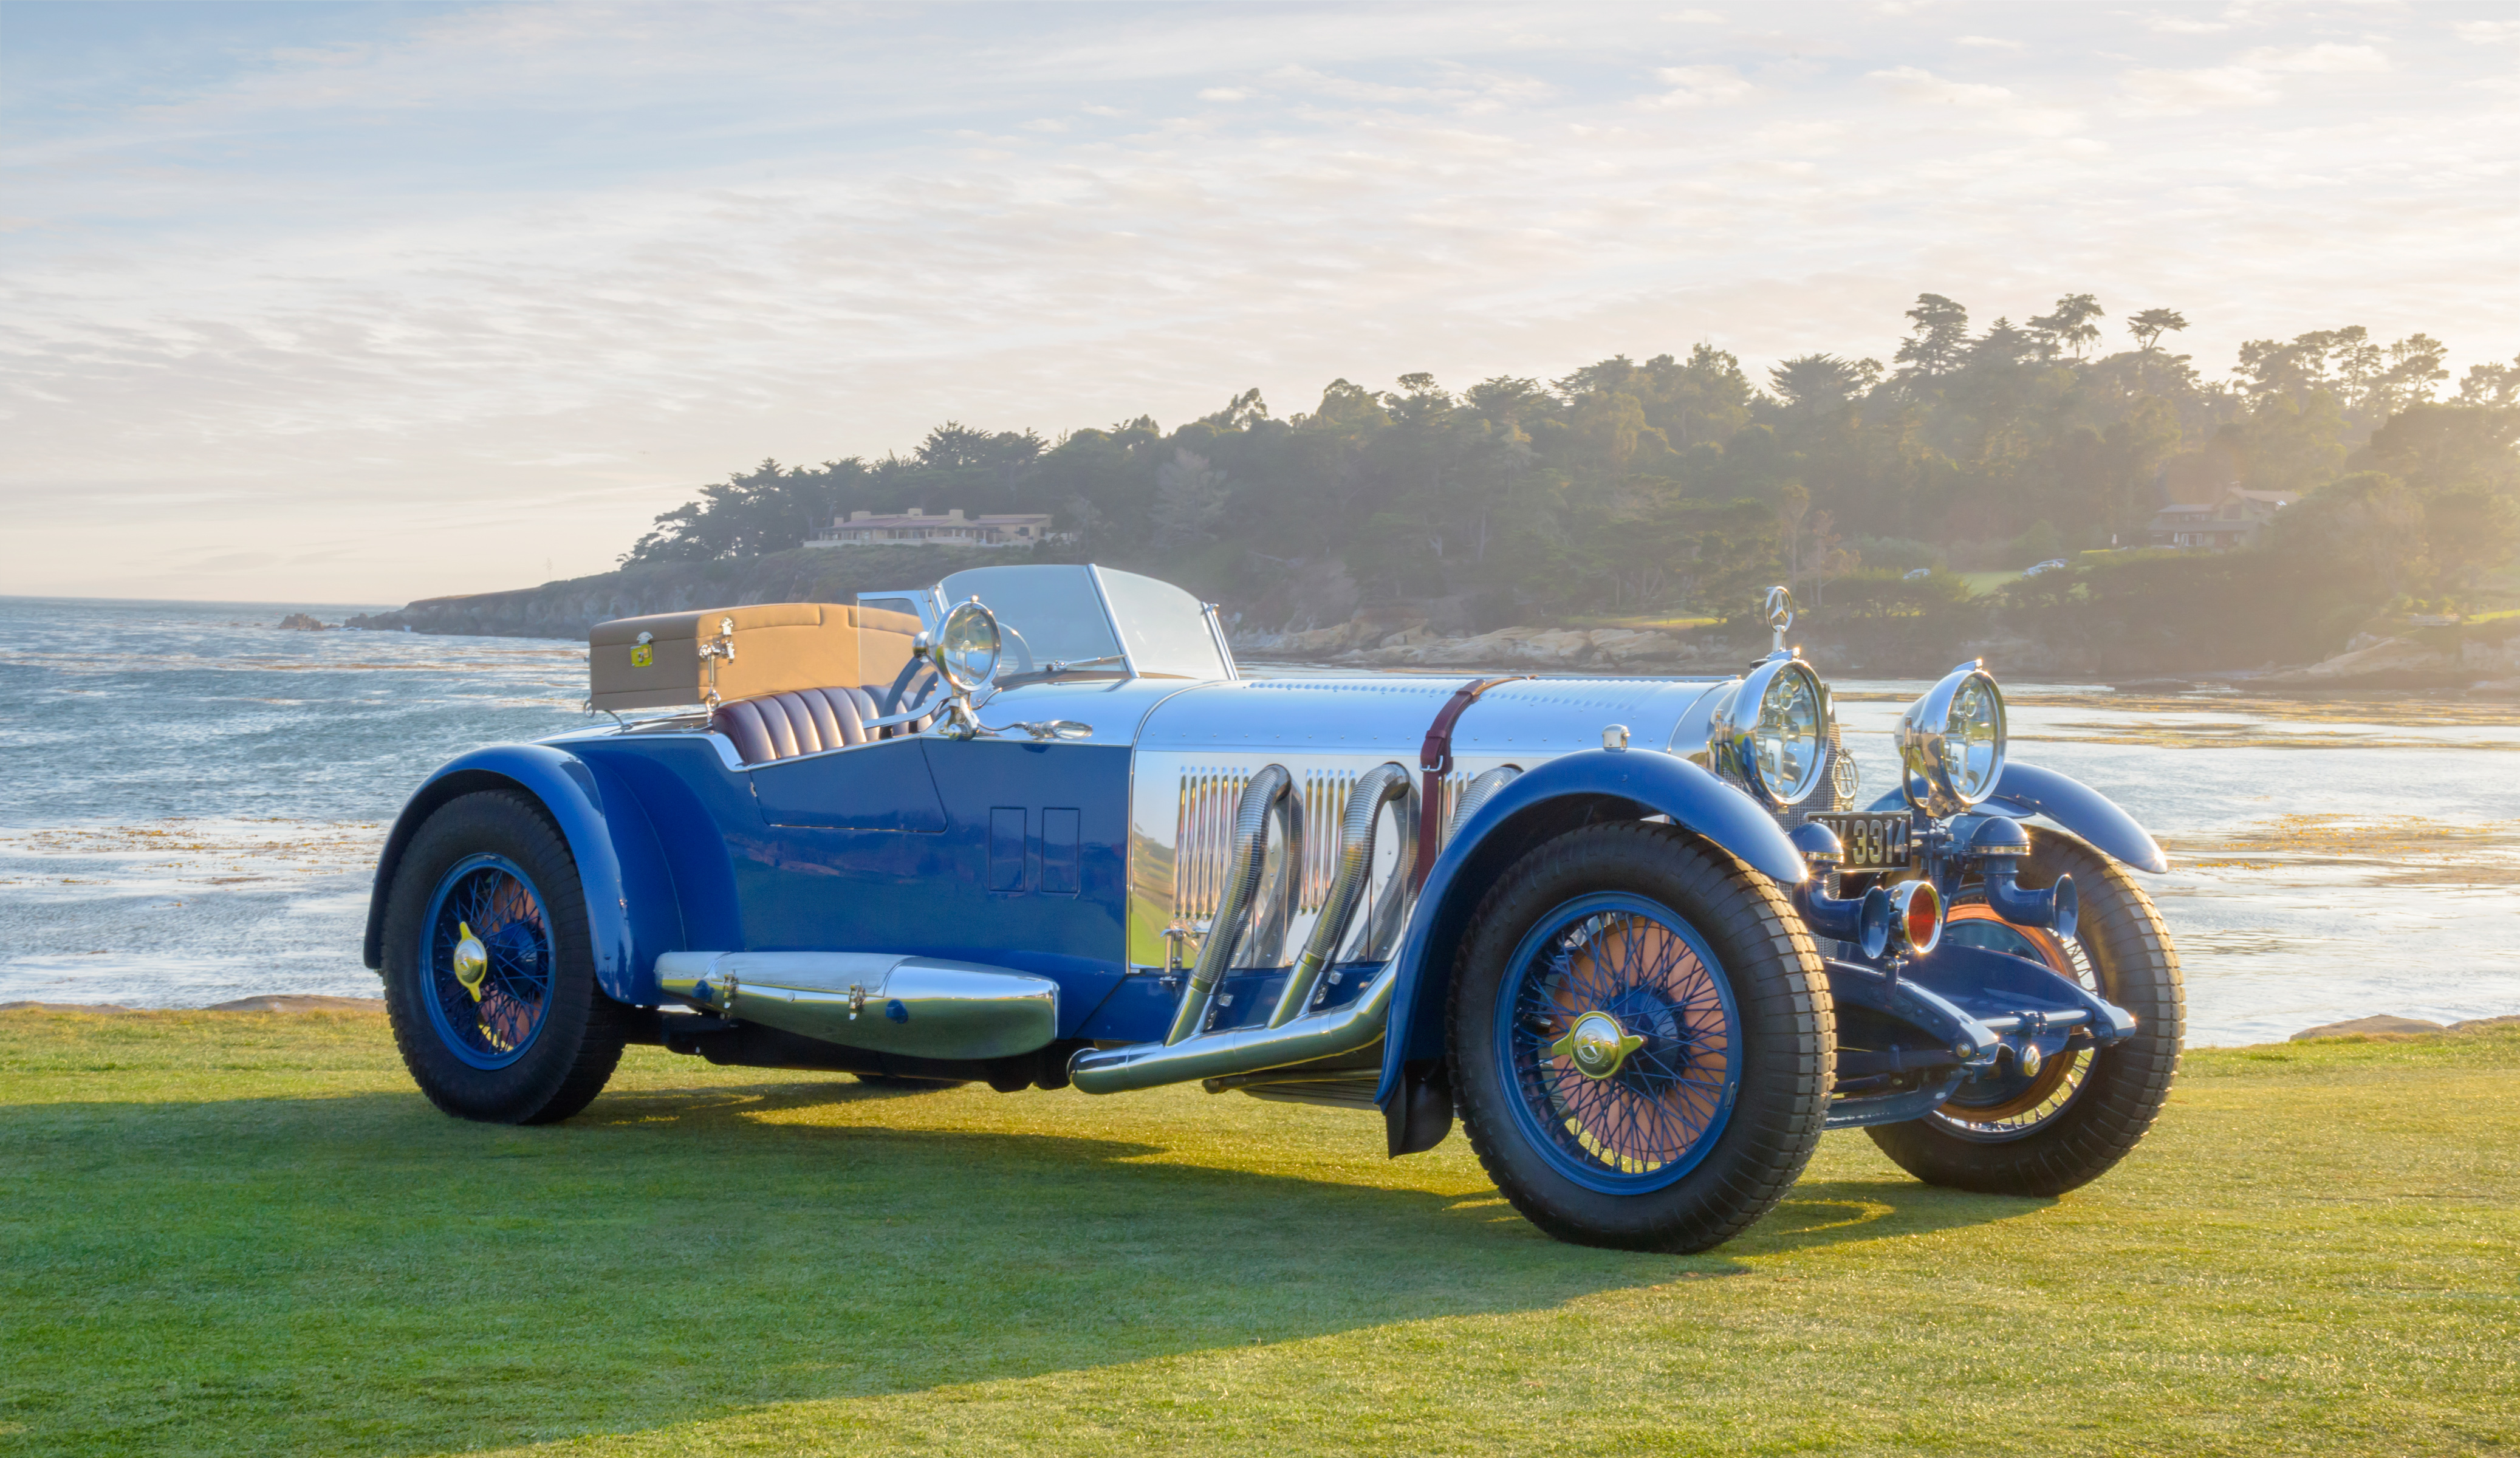 1929 Mercedes-Benz S Roadster by Barker: Pebble Beach Concours d'Elegance